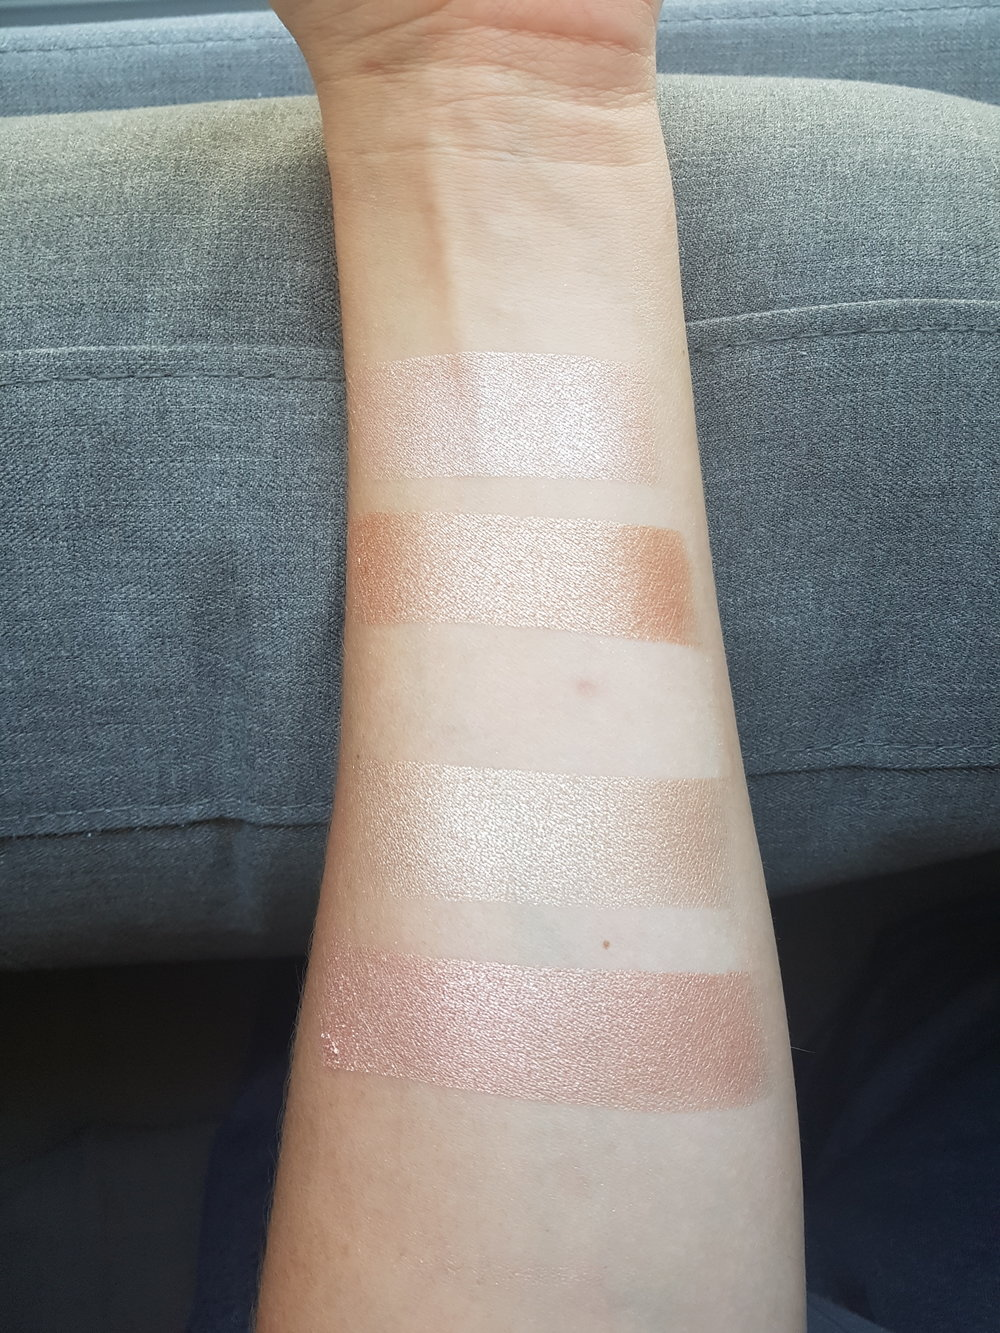 Top Two shades are from the Delicate Dew Palette  Bottom Two shades are from the Subtle Sunrise palette